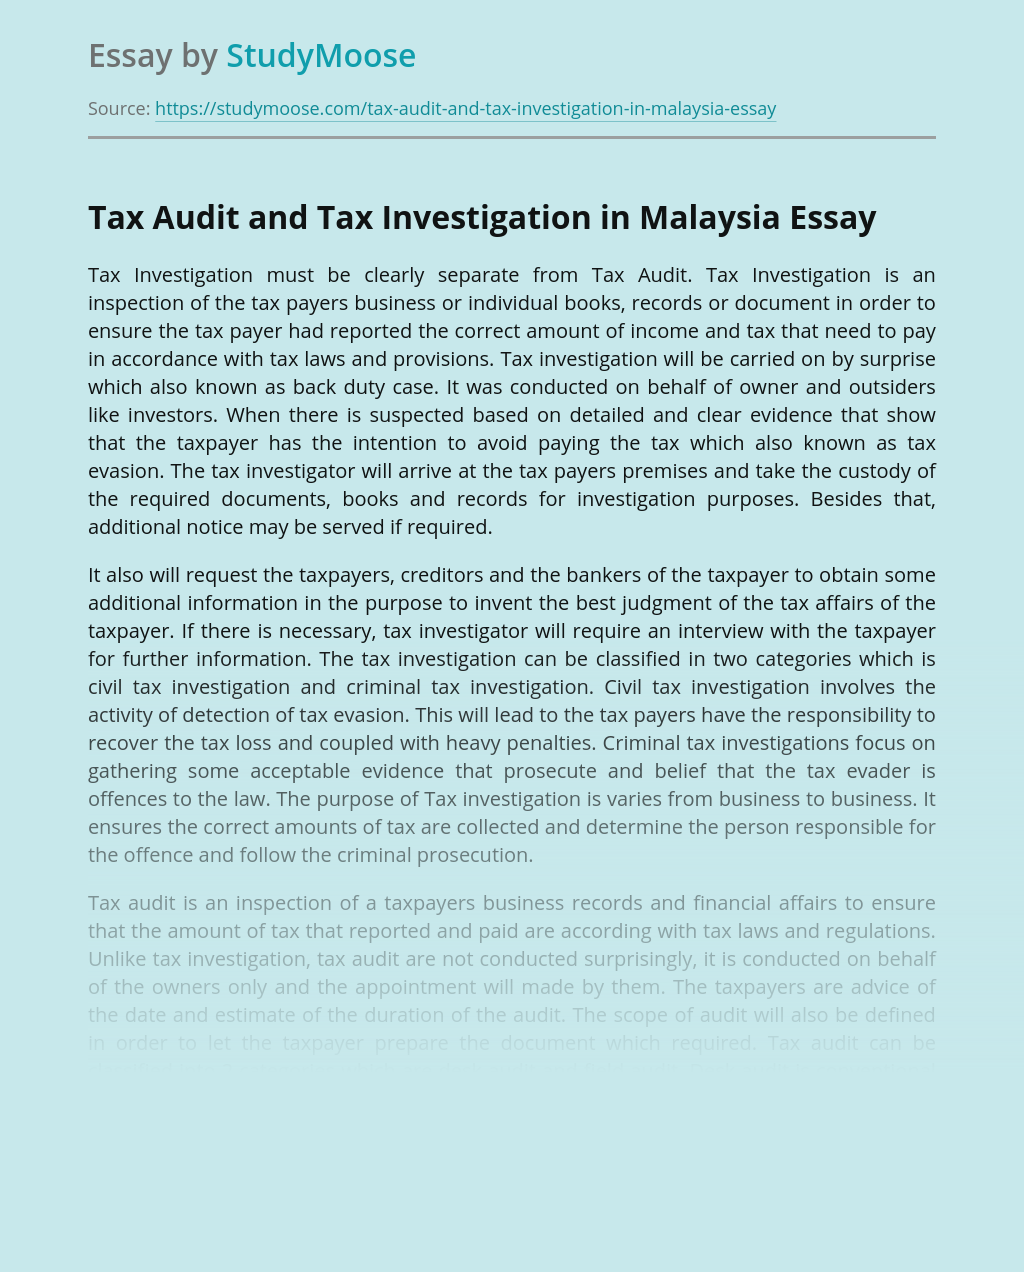 Tax Audit and Tax Investigation in Malaysia